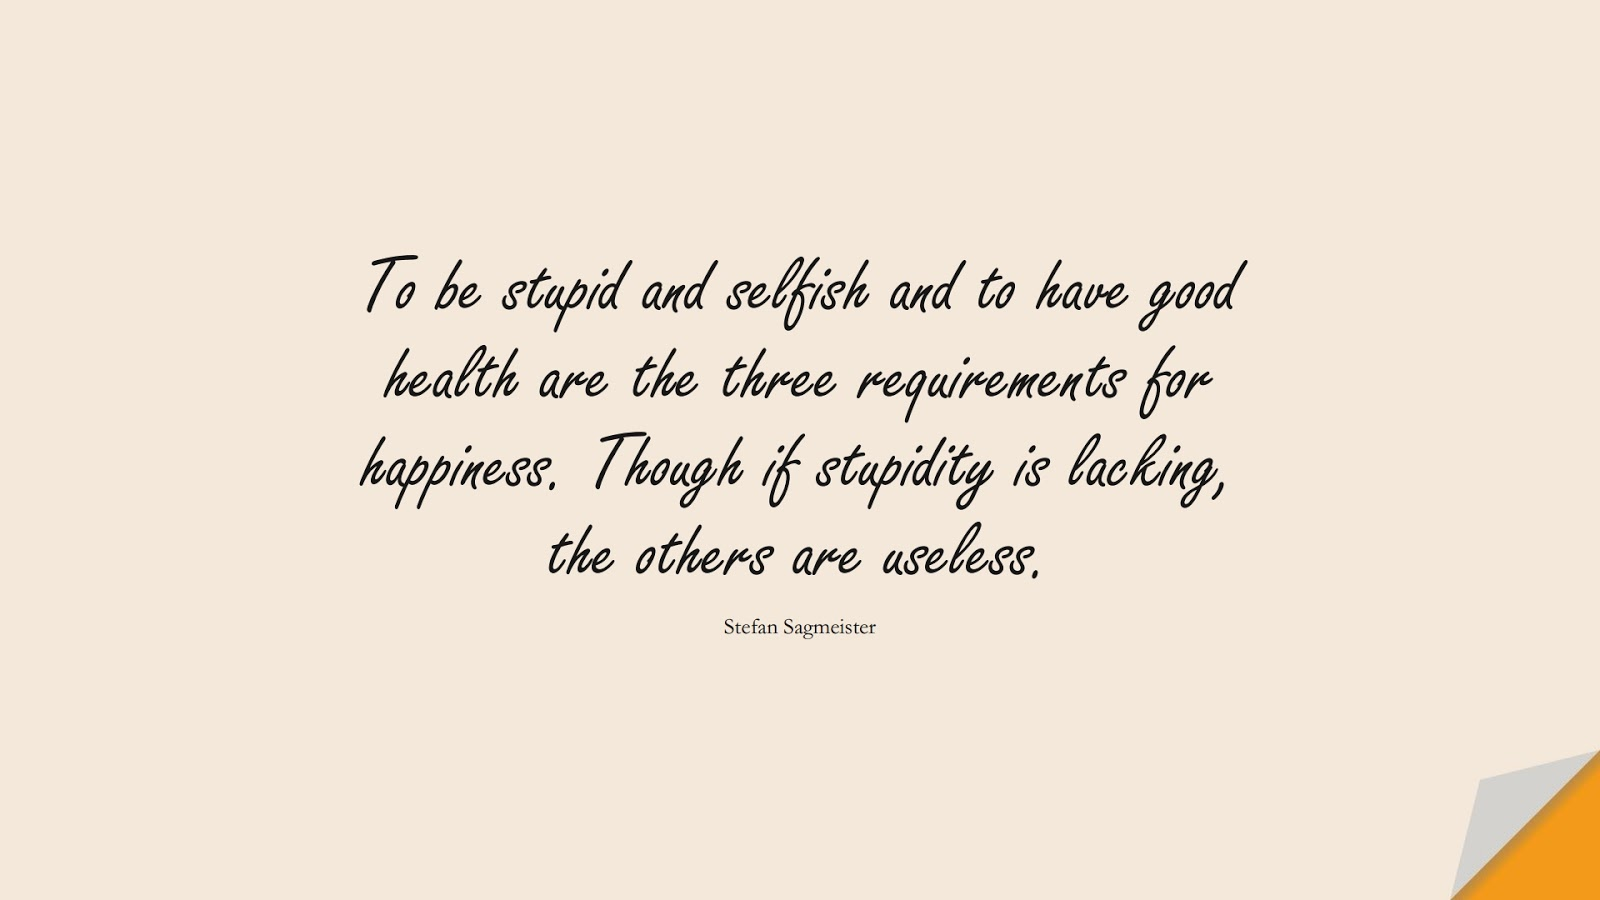 To be stupid and selfish and to have good health are the three requirements for happiness. Though if stupidity is lacking, the others are useless. (Stefan Sagmeister);  #HealthQuotes